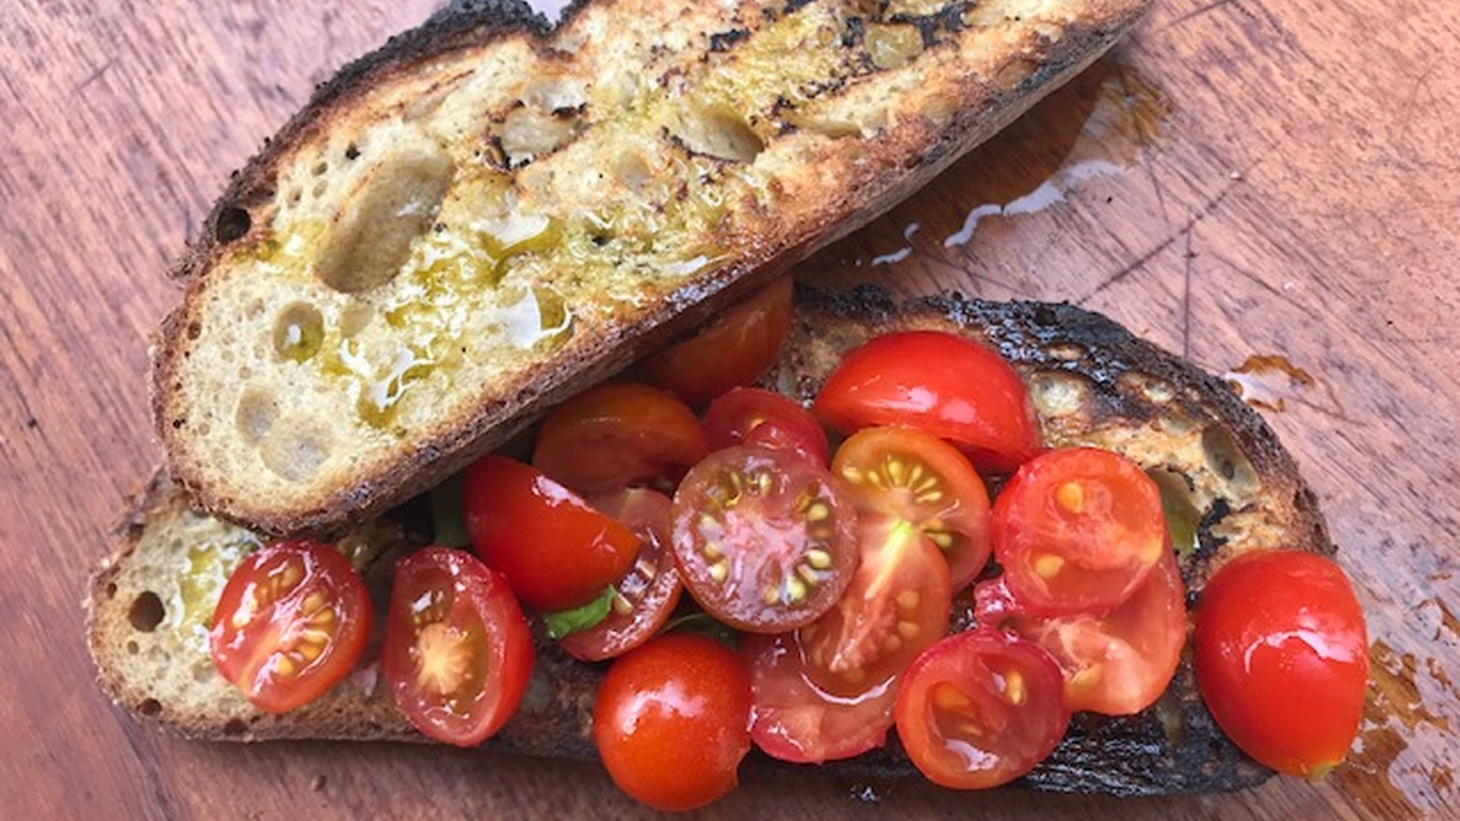 A classic bruschetta is topped with fresh tomatoes.